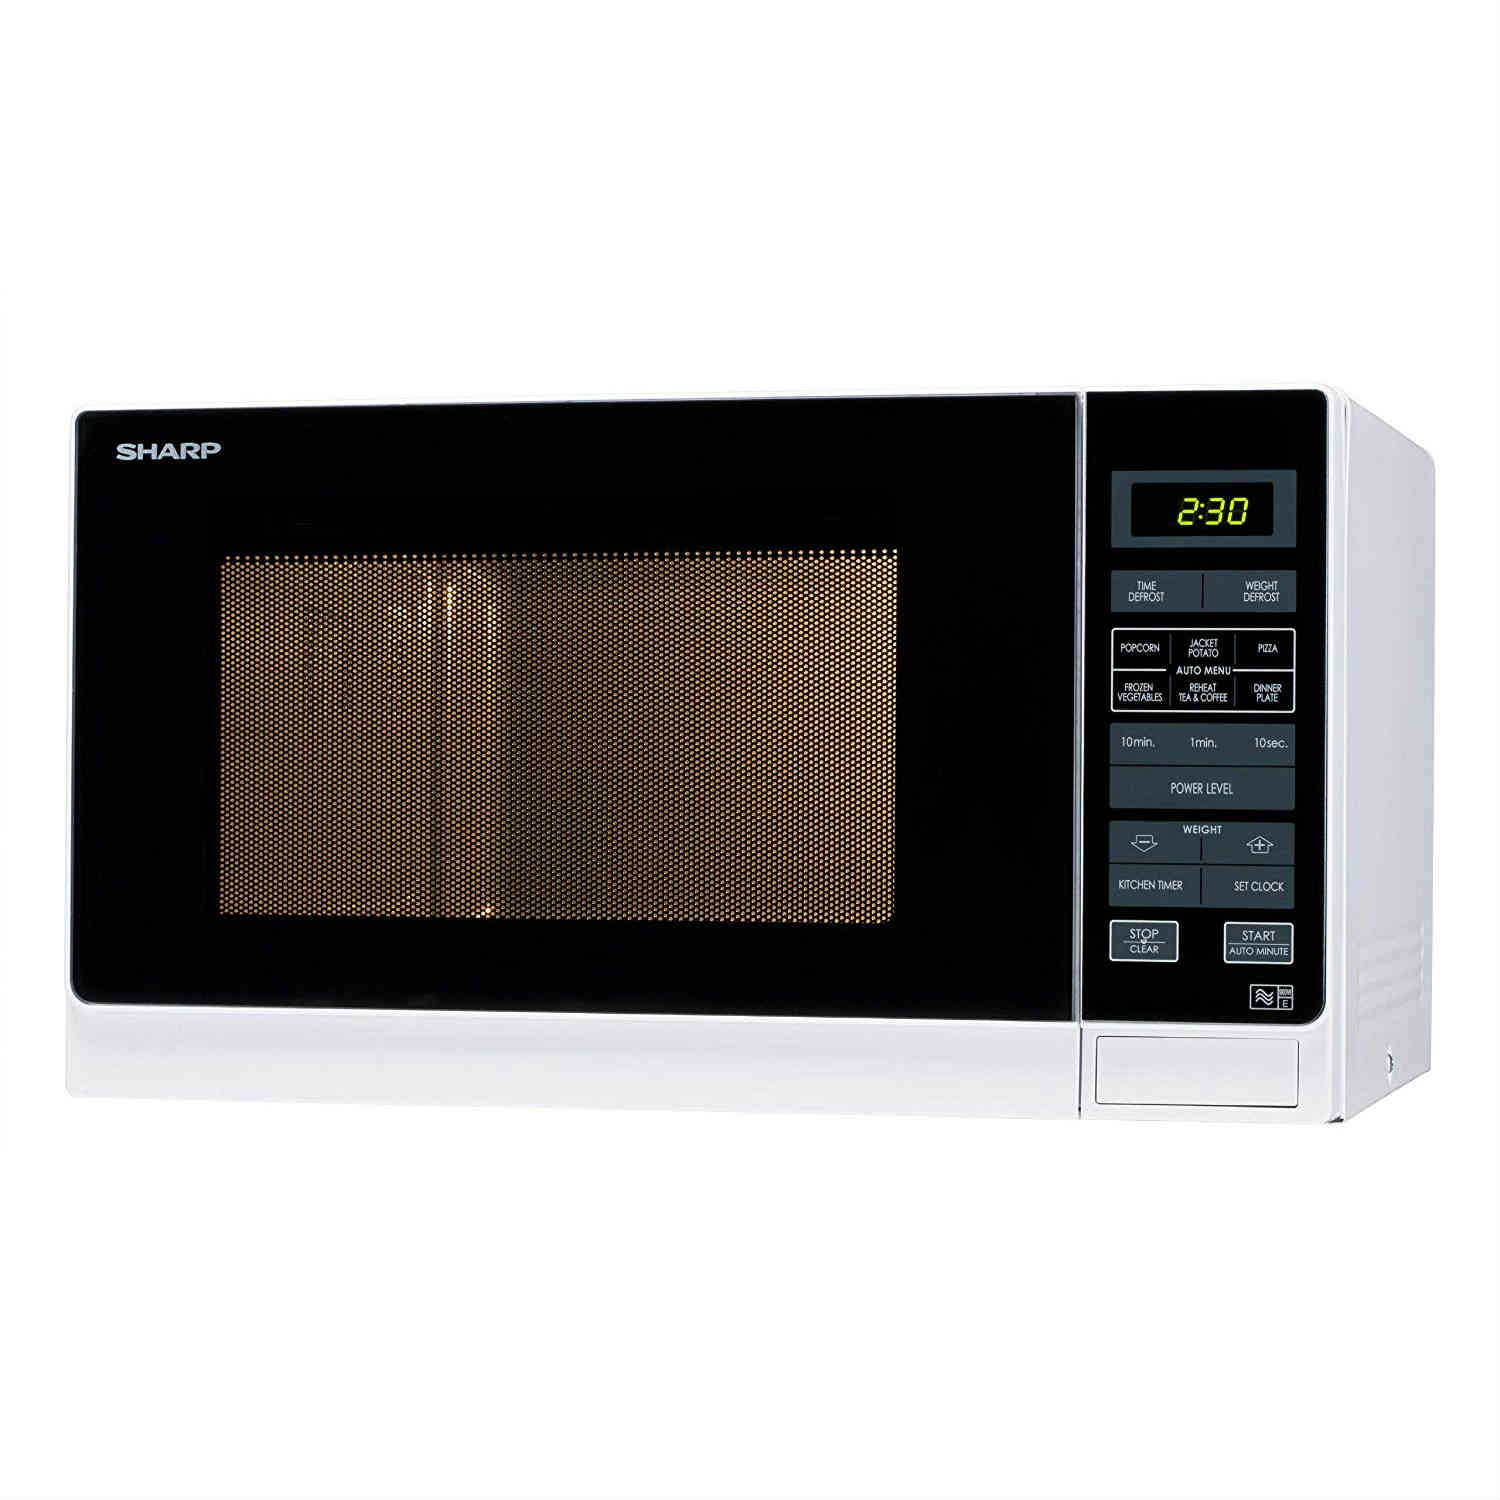 Sharp 25Ltr Solo Touch Control Microwave